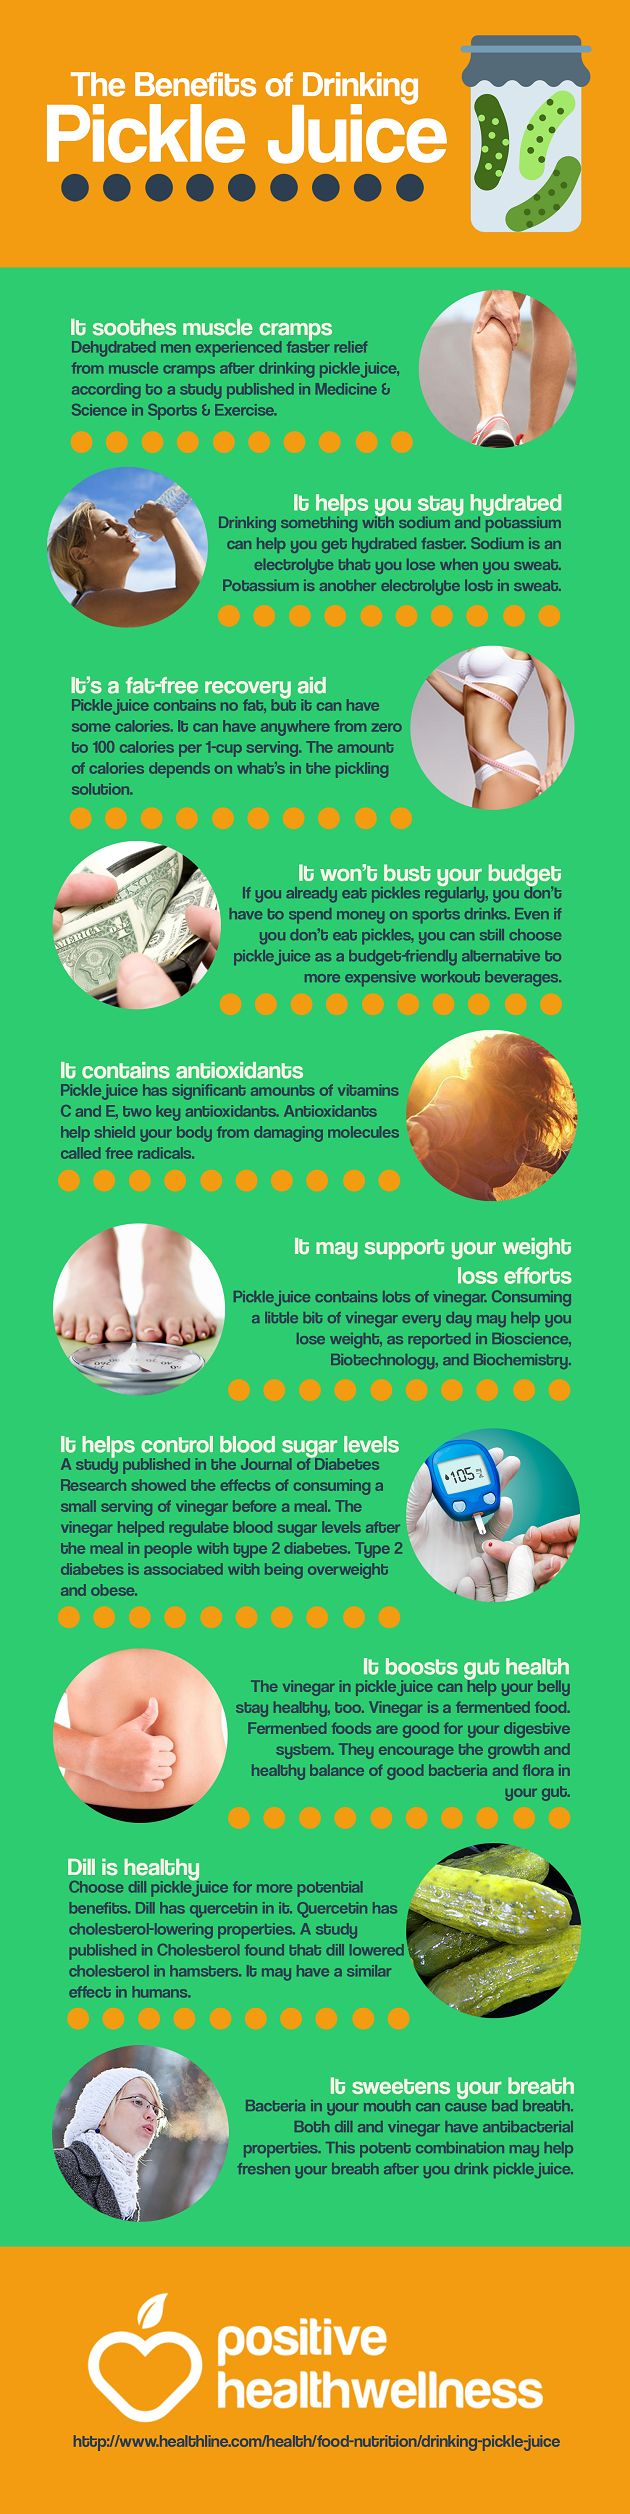 The Benefits of Drinking Pickle Juice – Positive Health Wellness Infographic